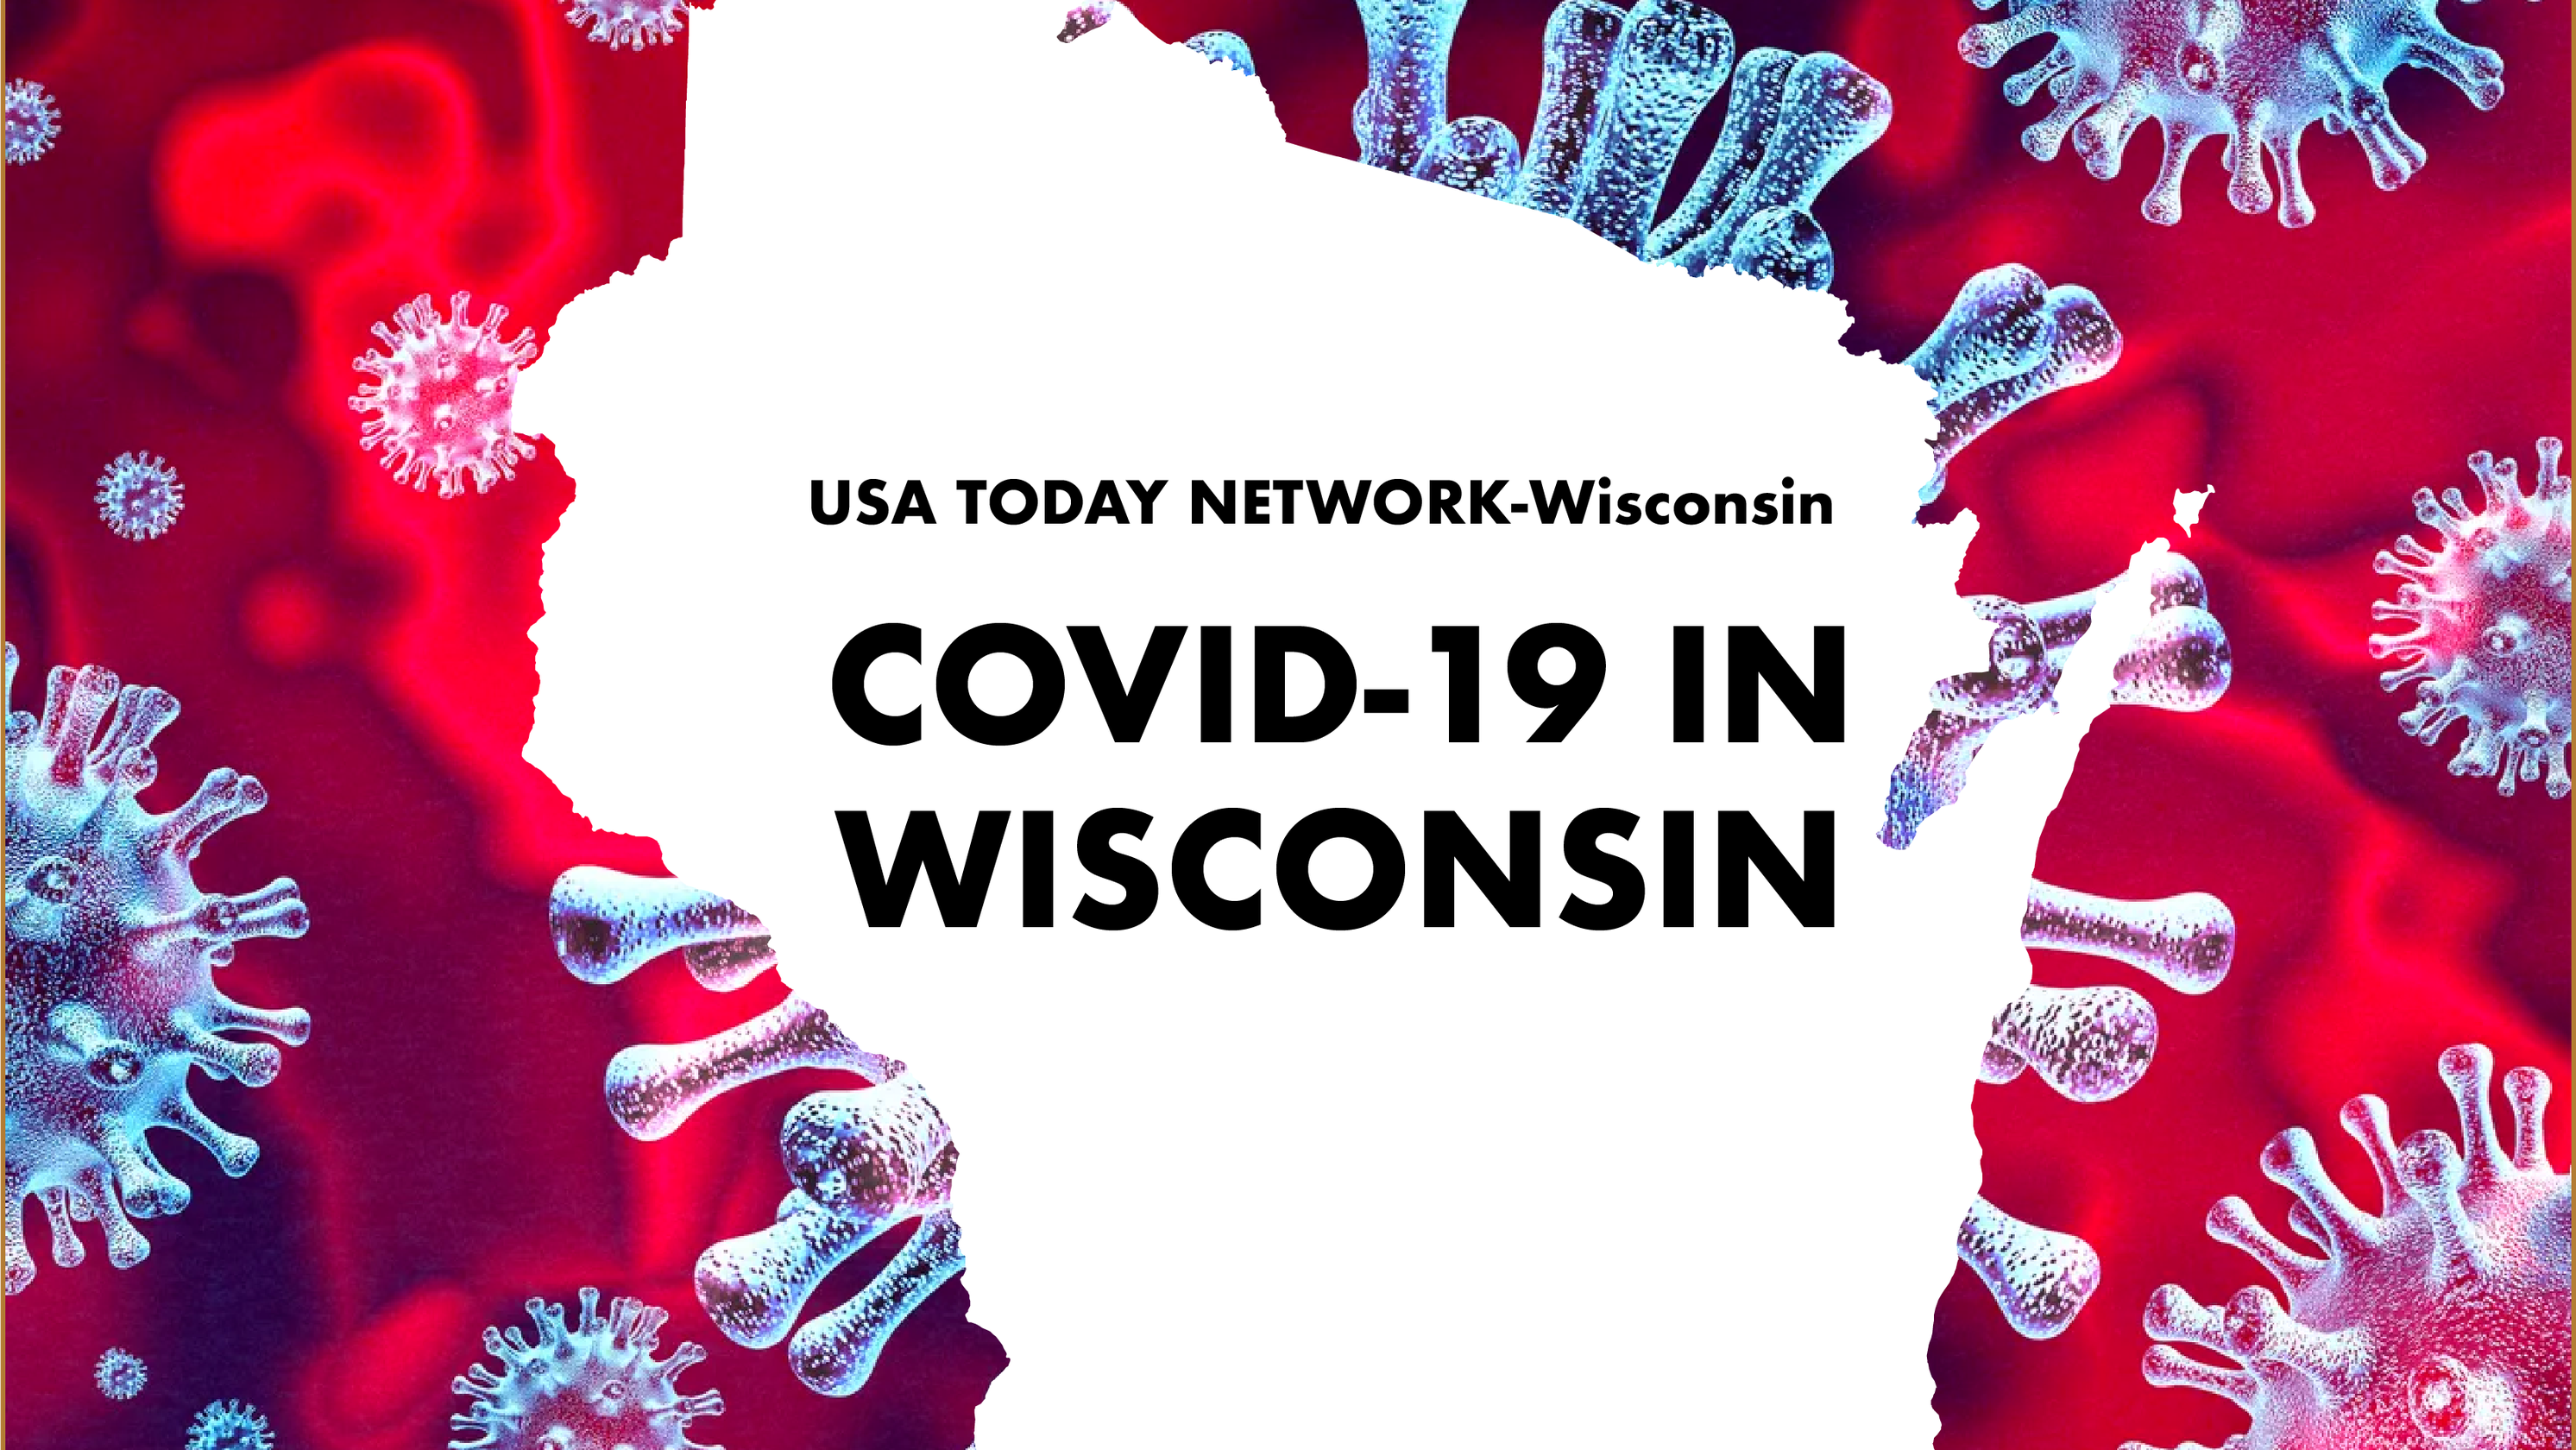 602,000 Wisconsinites received both doses of COVID-19 vaccine; state reports 329 new cases - Green Bay Press Gazette